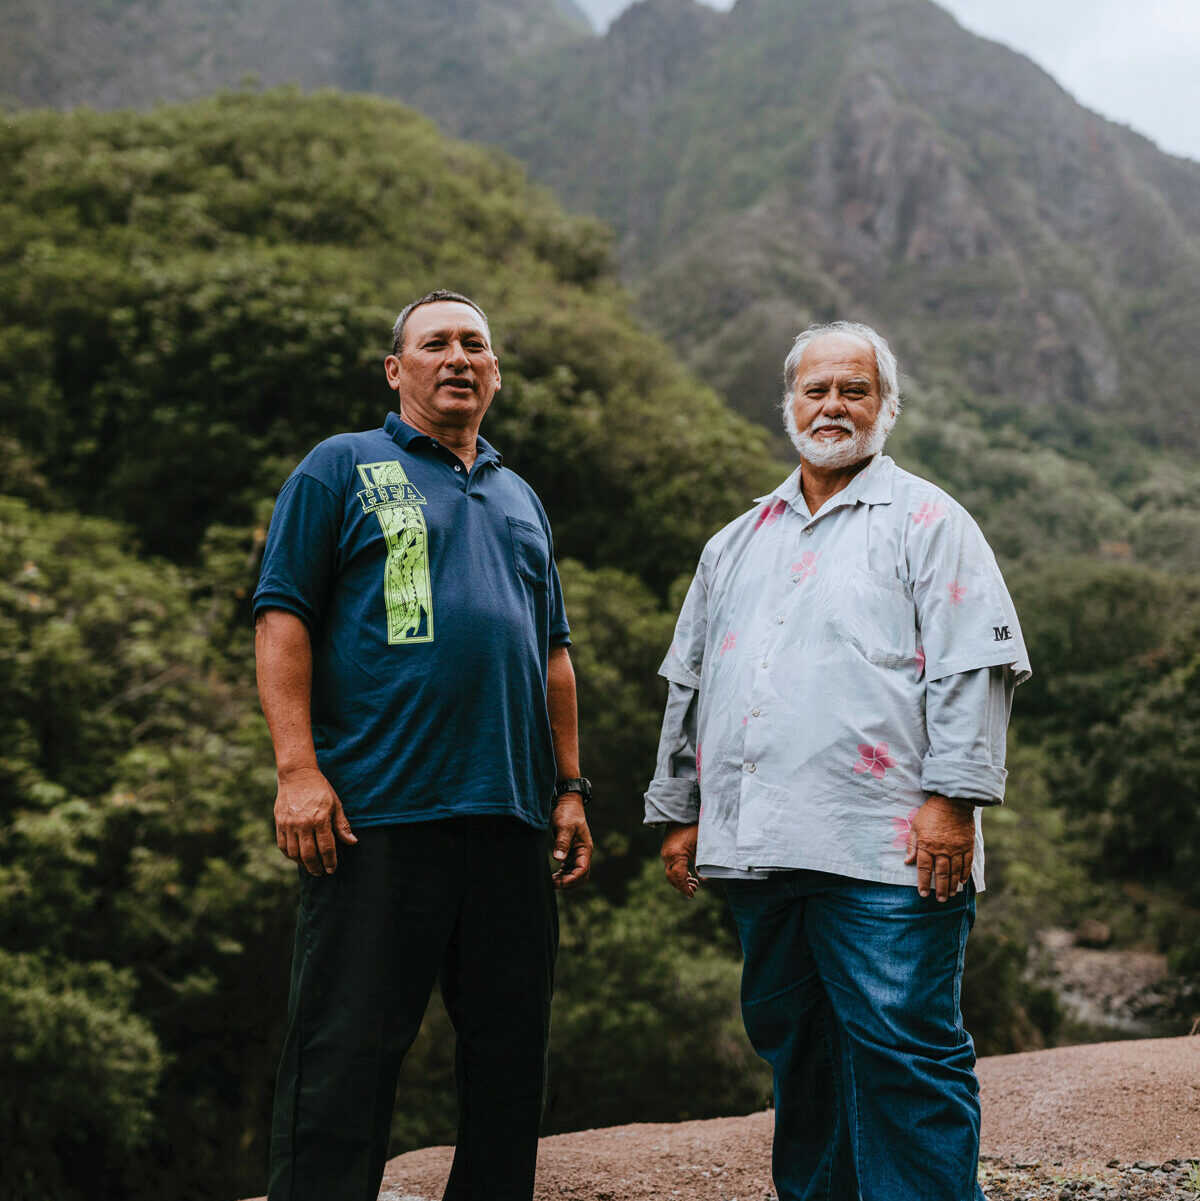 Providing opportunity and empowering Hawaiʻi's emerging leaders